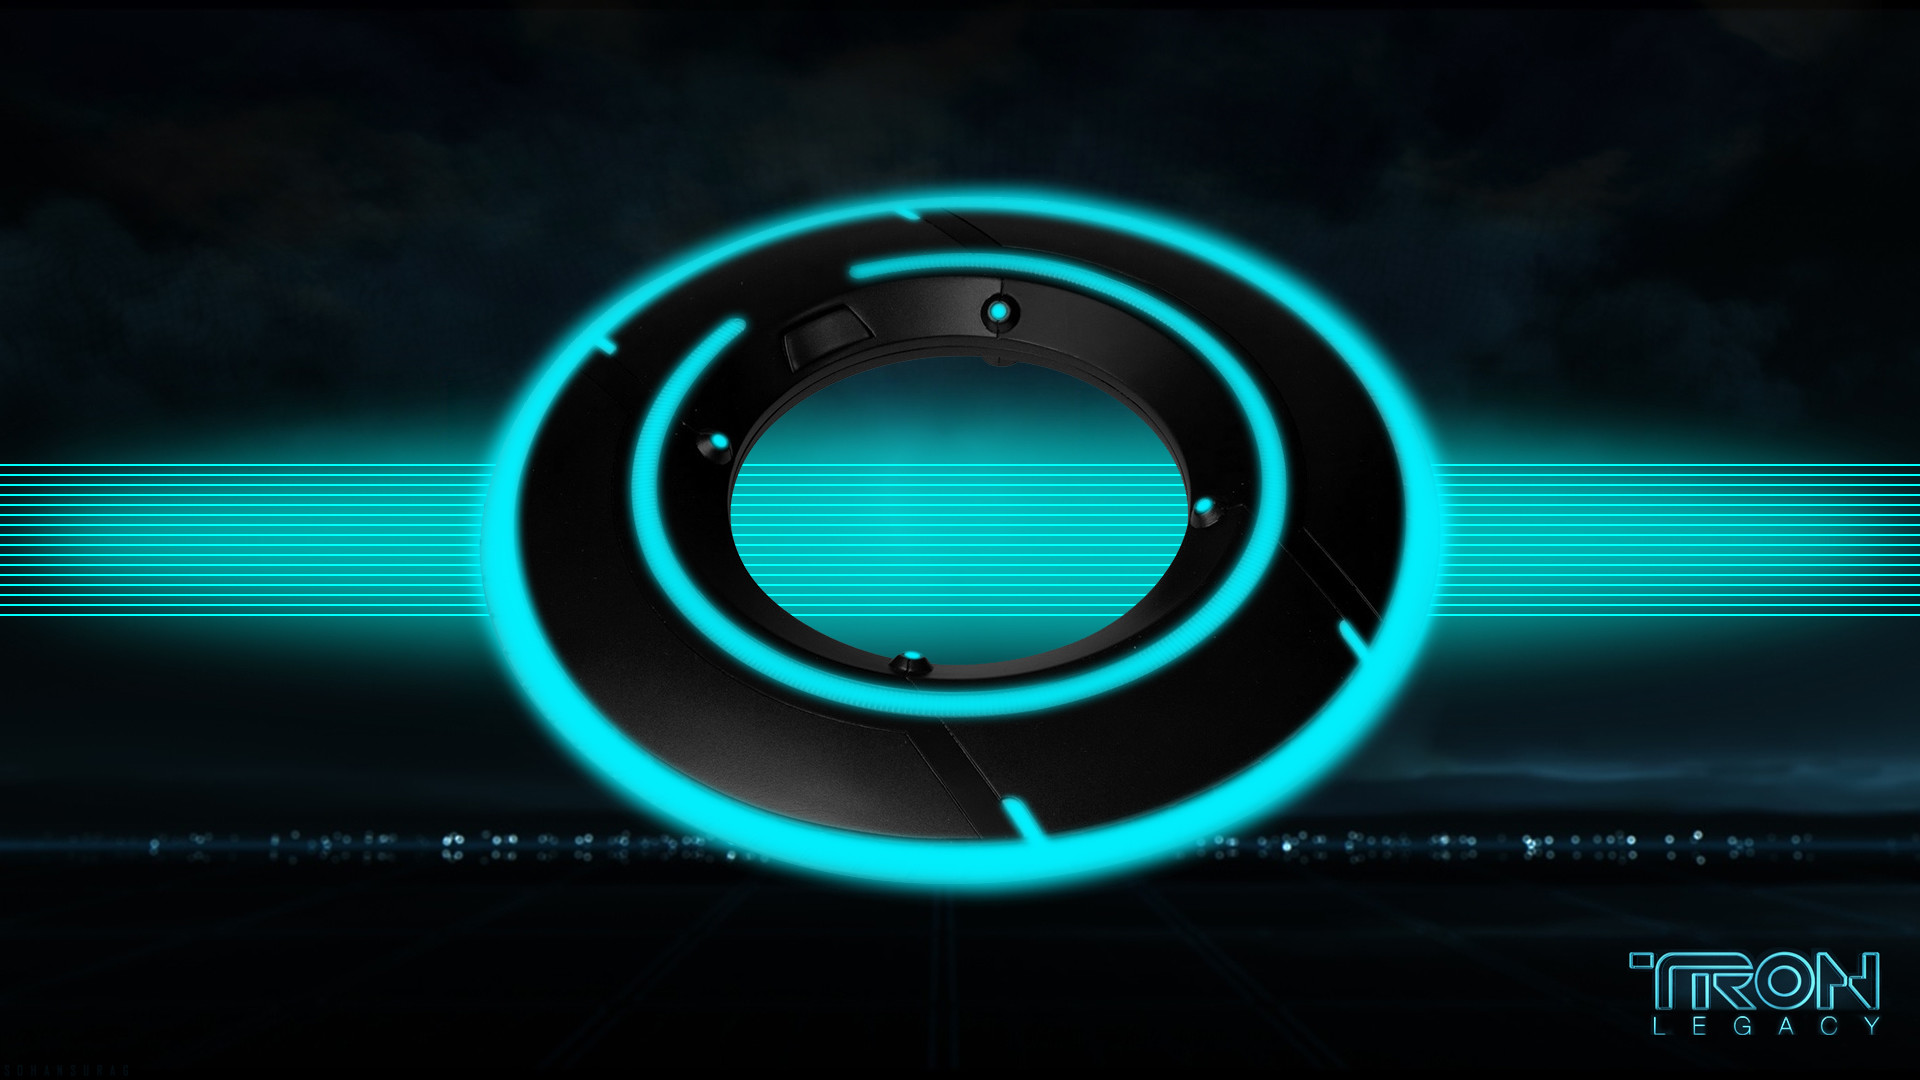 TRON: Legacy HD Wallpapers Backgrounds Wallpaper 1920×1080 Tron Wallpaper  (39 Wallpapers)